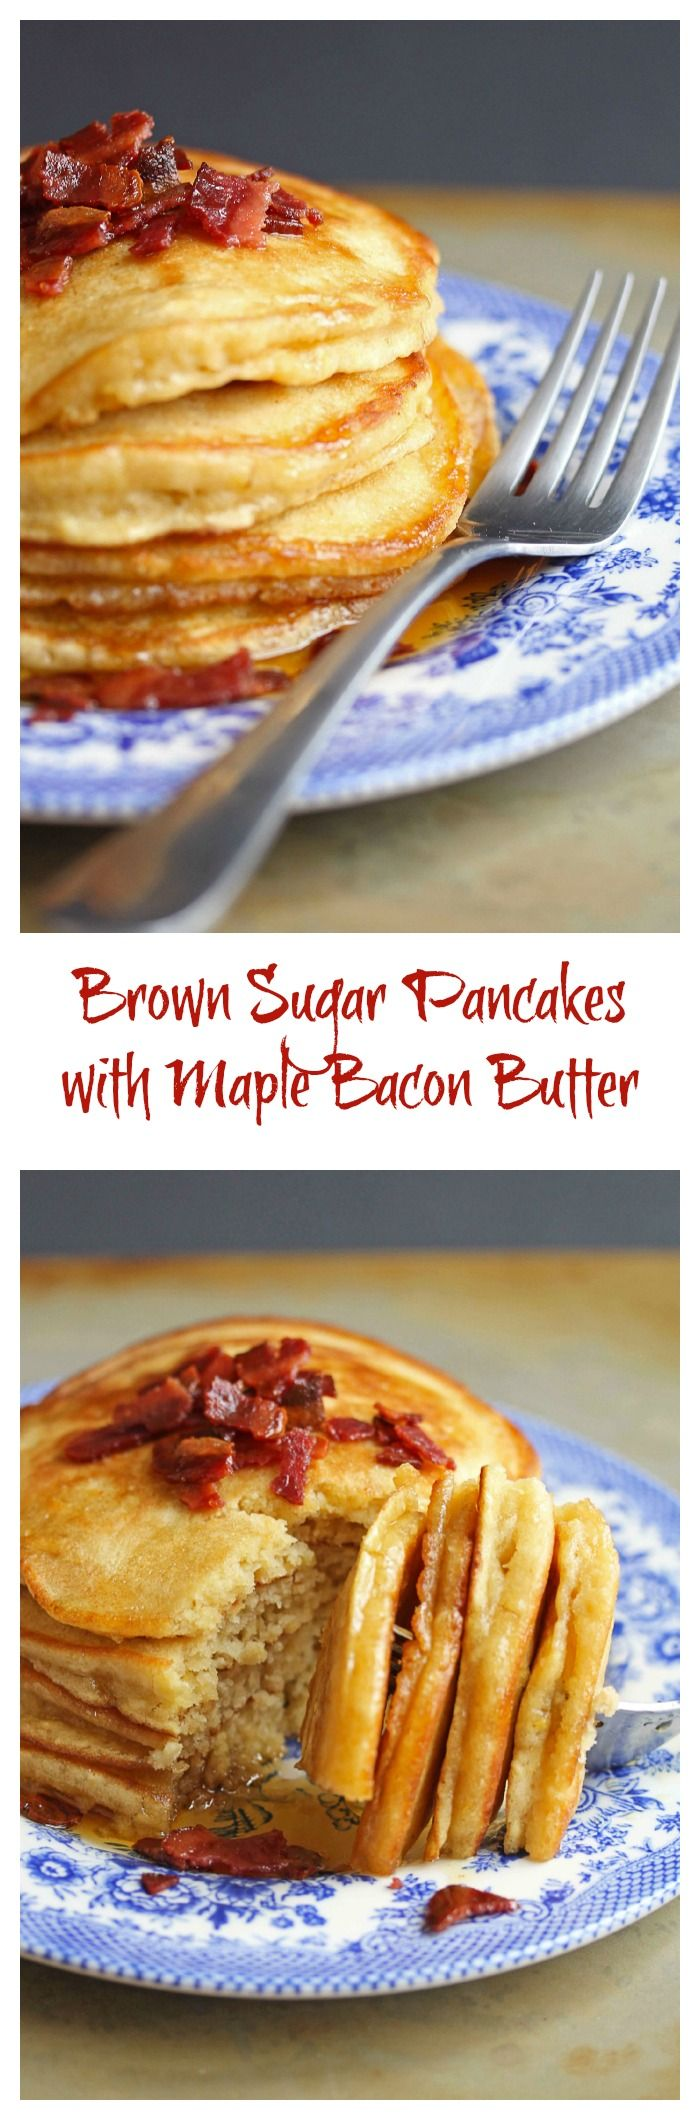 Brown Sugar Pancakes with Maple Bacon Butter